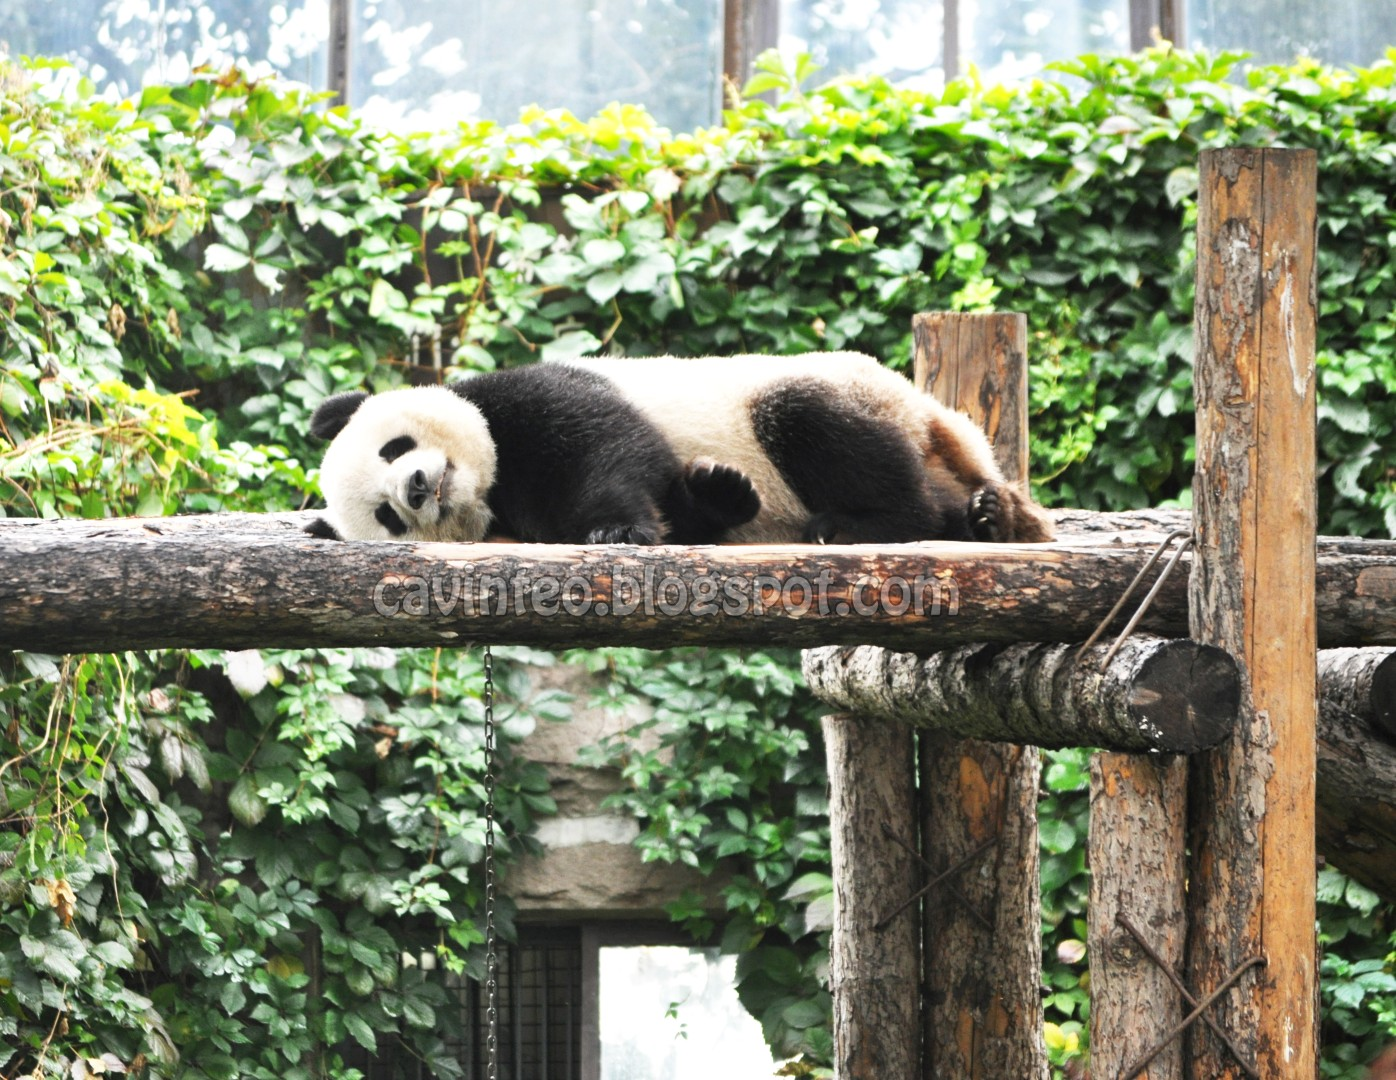 I might have visited the Singapore Zoo the last time it temporarily hosted  the Giant Panda (which was more than ten years ago) but it was so far away  and ...